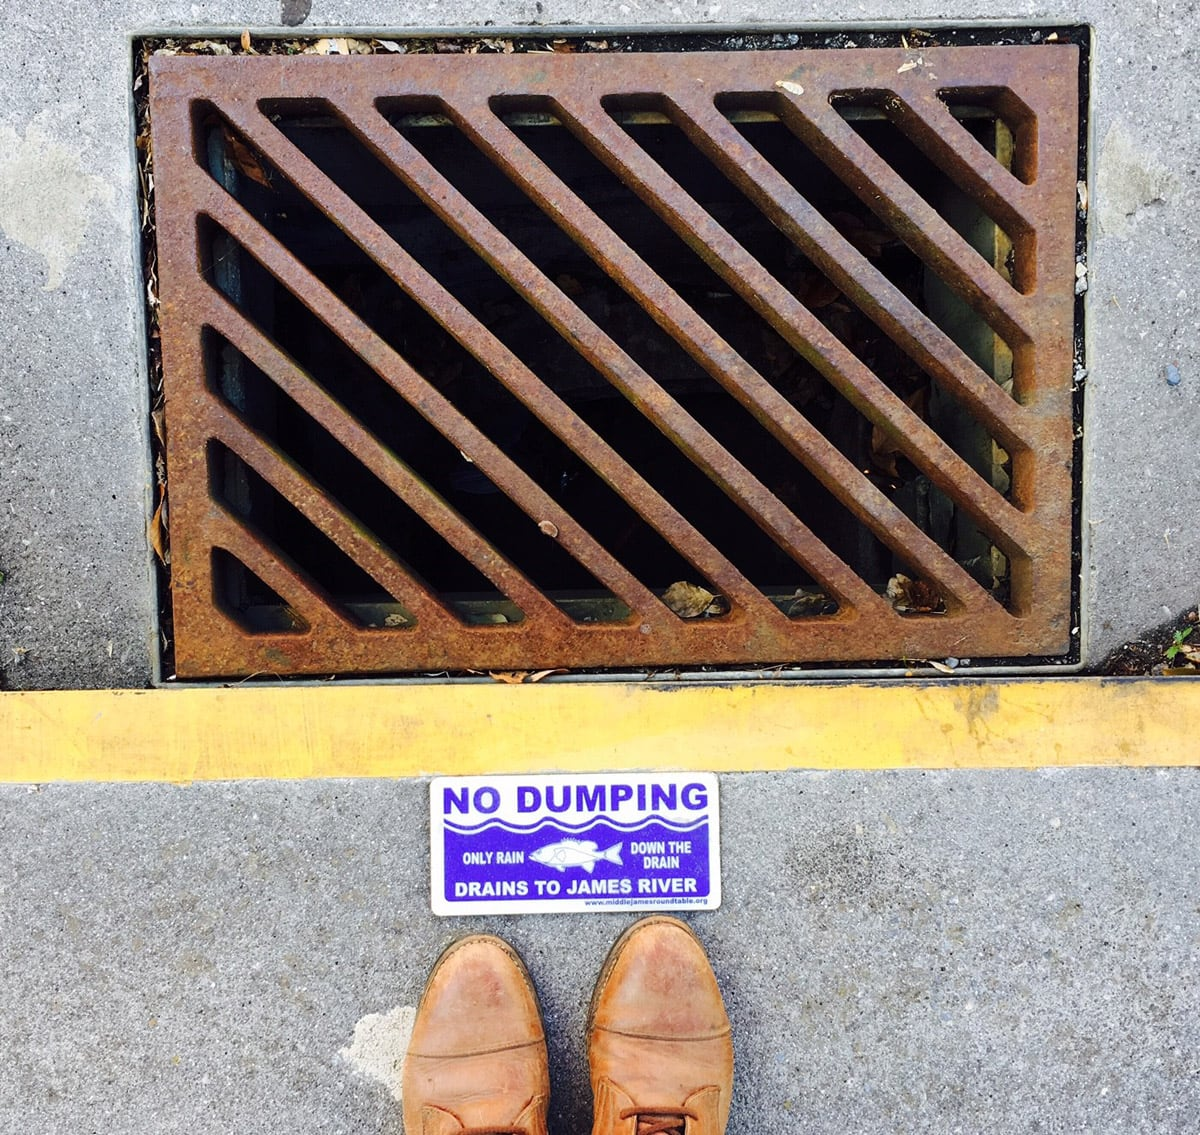 Sign to inform the public that storm sewers are not for dumping